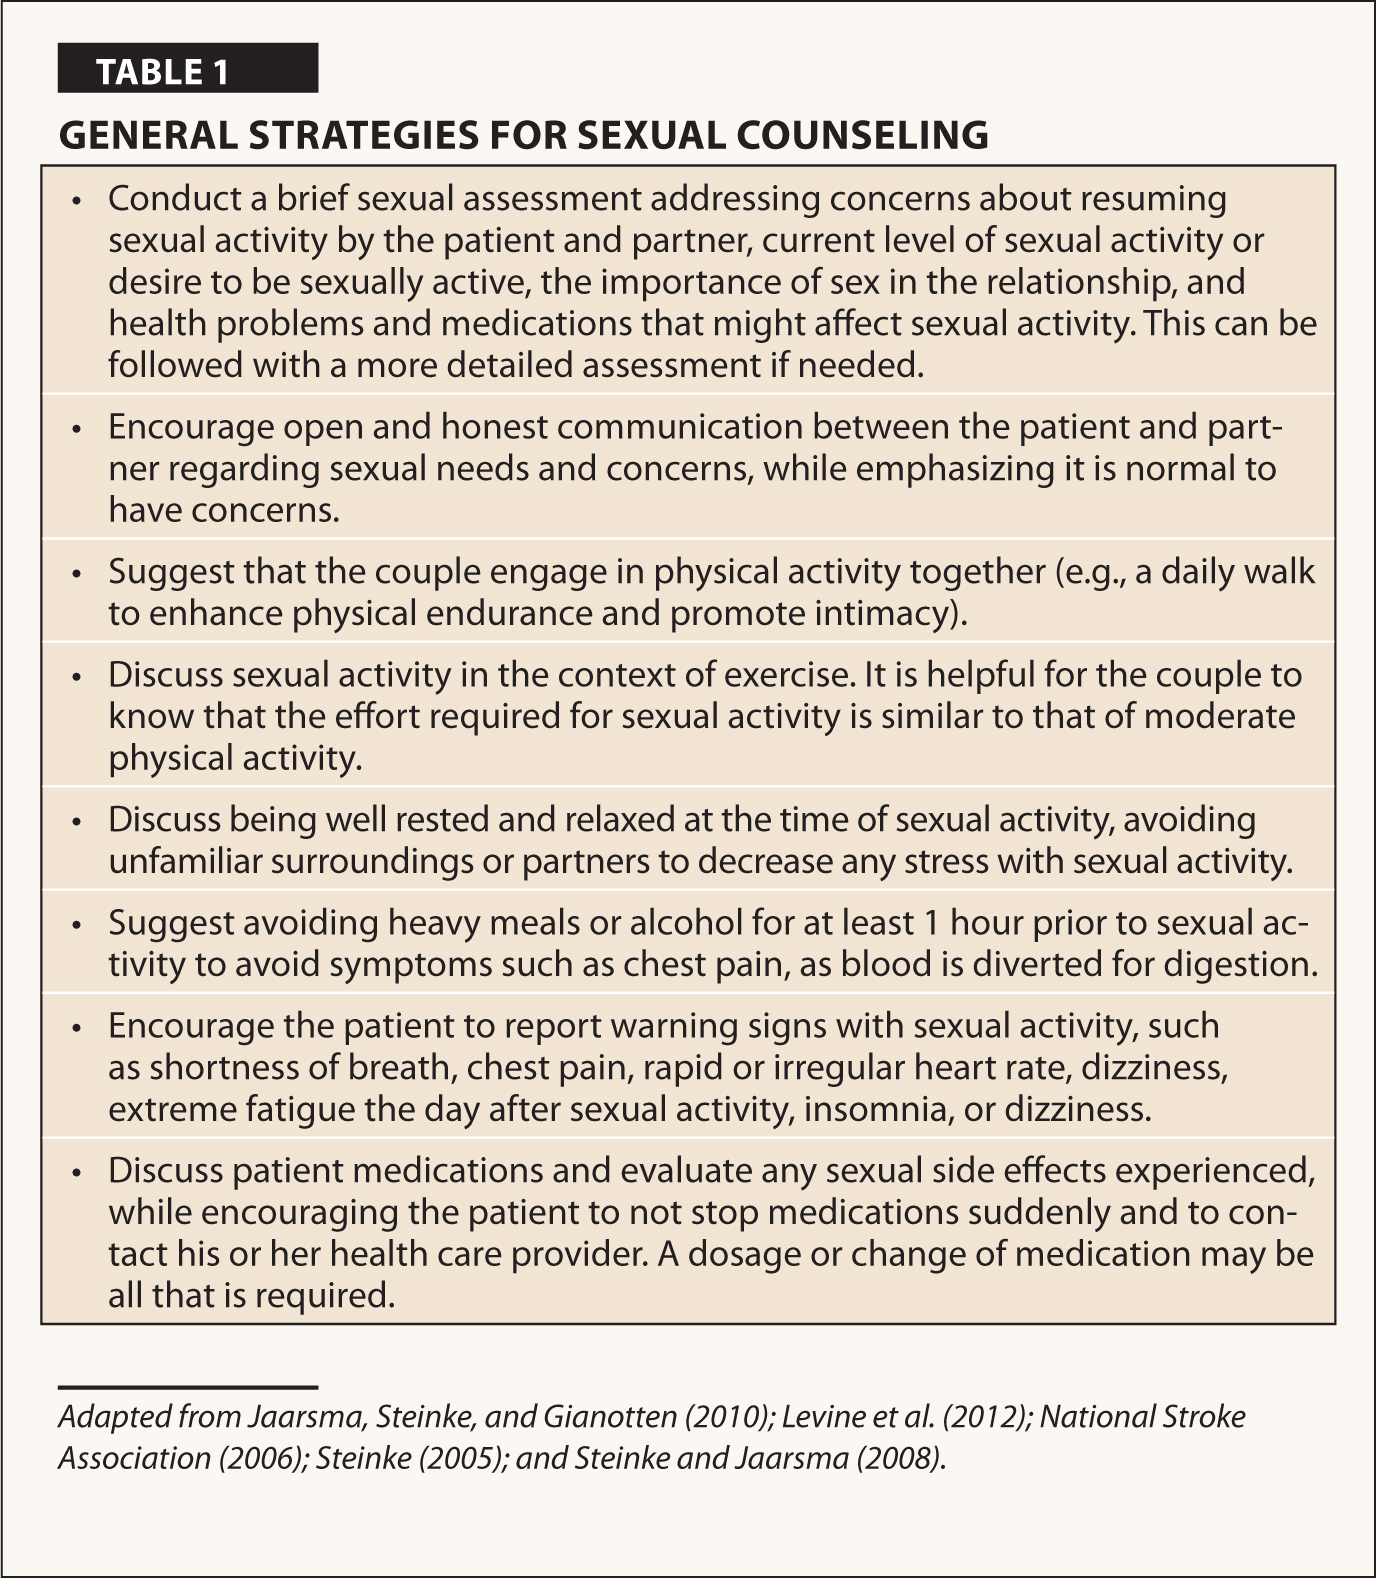 General Strategies for Sexual Counseling